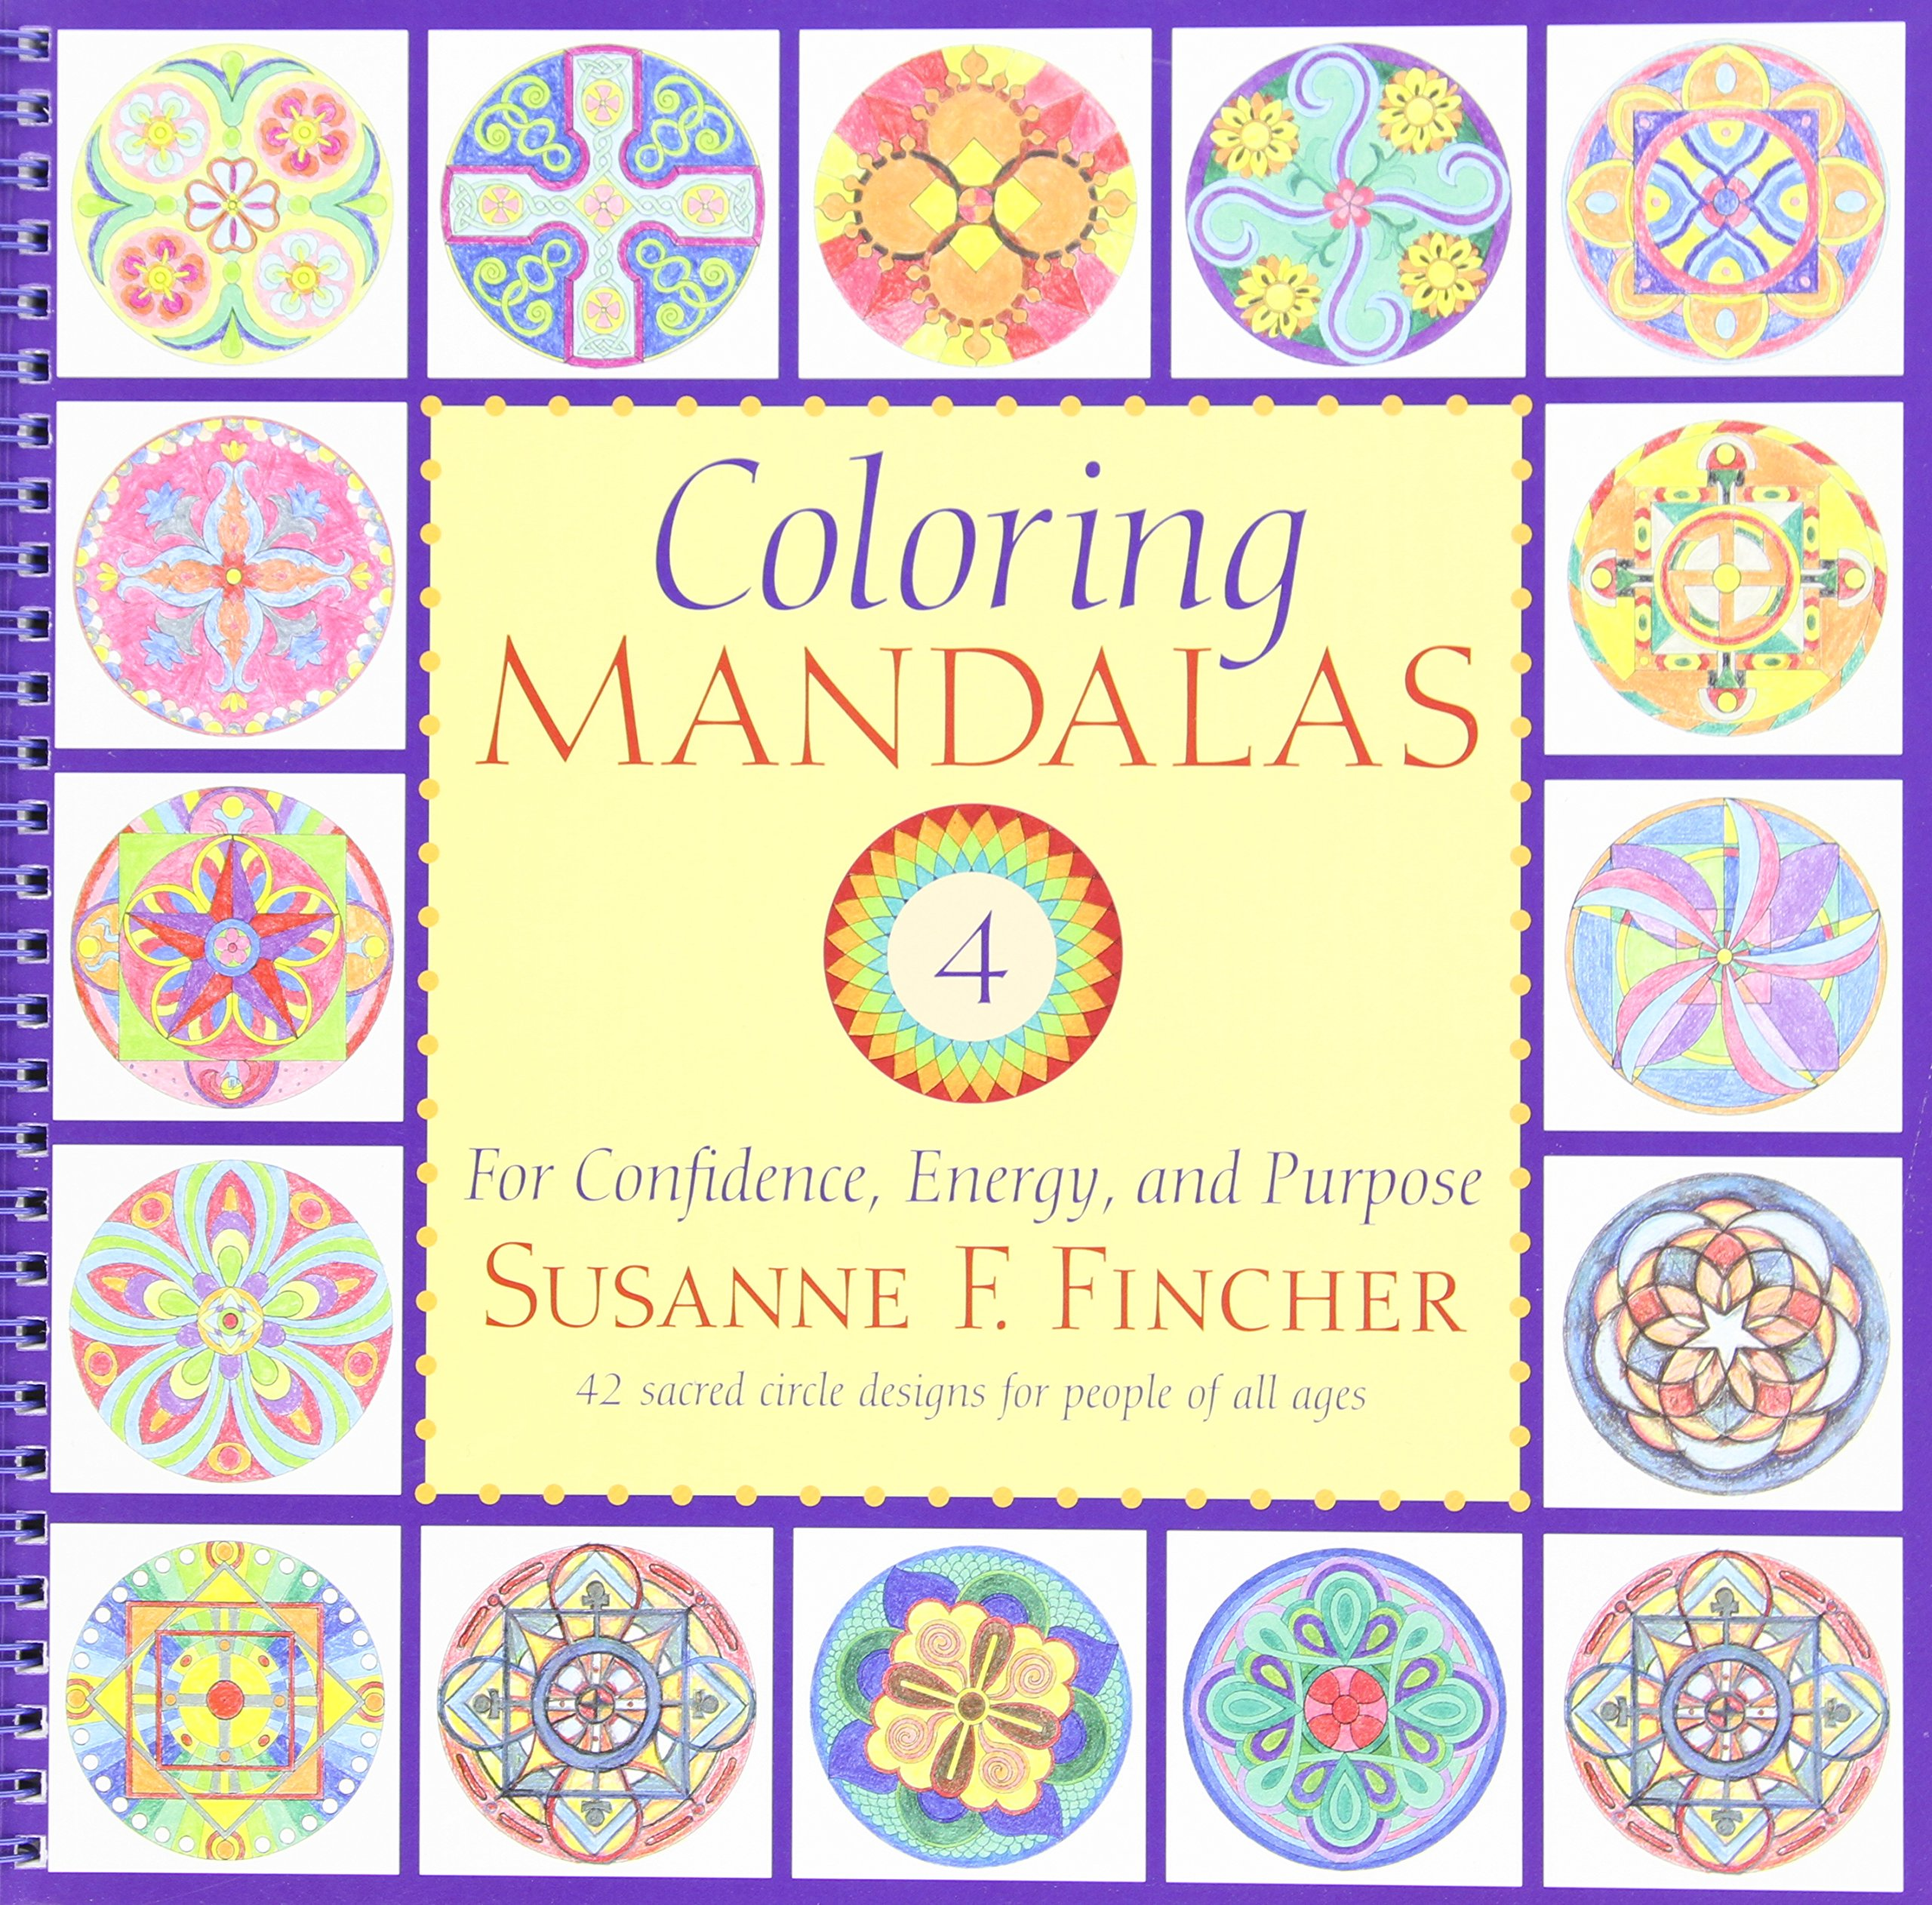 Mandala coloring pages amazon - Amazon Com Coloring Mandalas 4 For Confidence Energy And Purpose An Adult Coloring Book 9781590309032 Susanne F Fincher Books